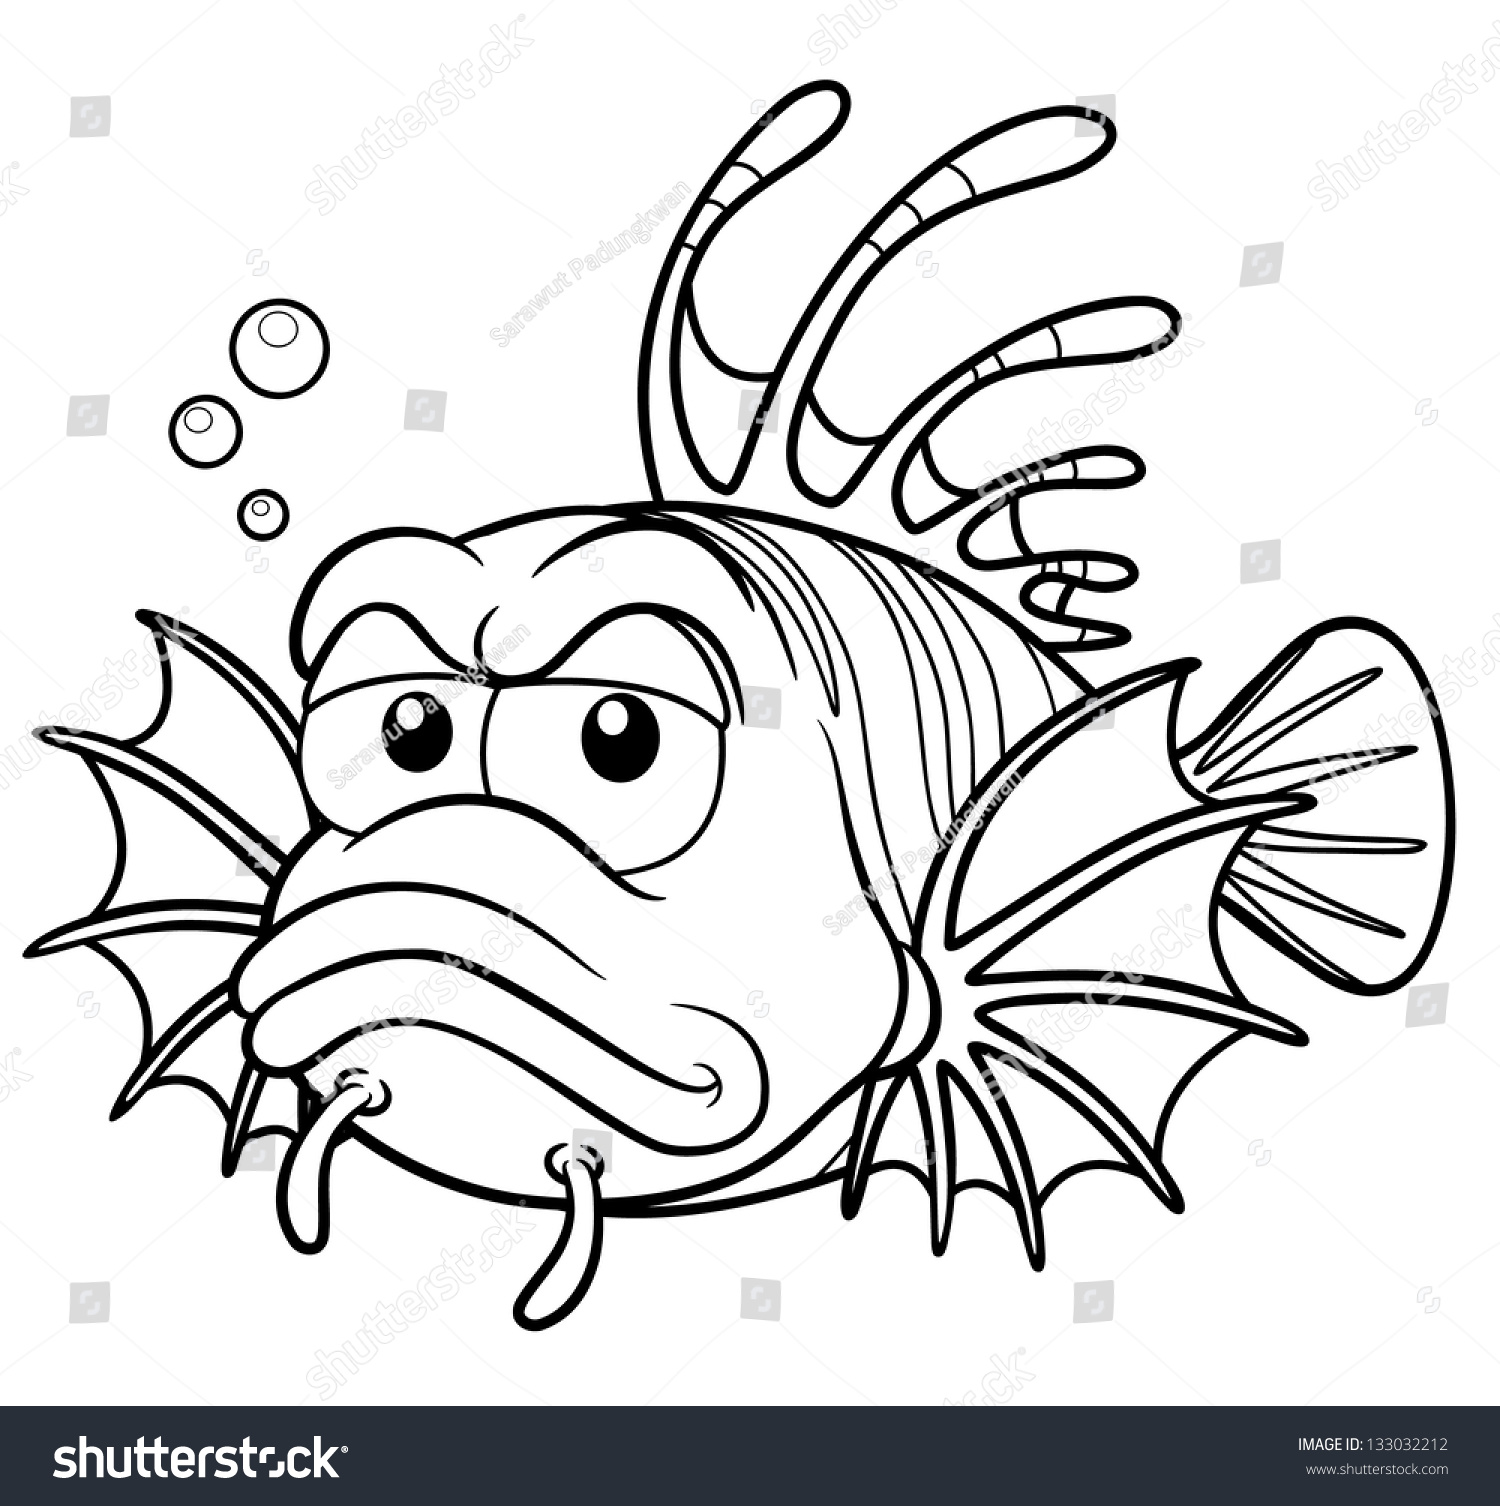 Vector Illustration Lionfish Cartoon Coloring Book Stock Vector ...